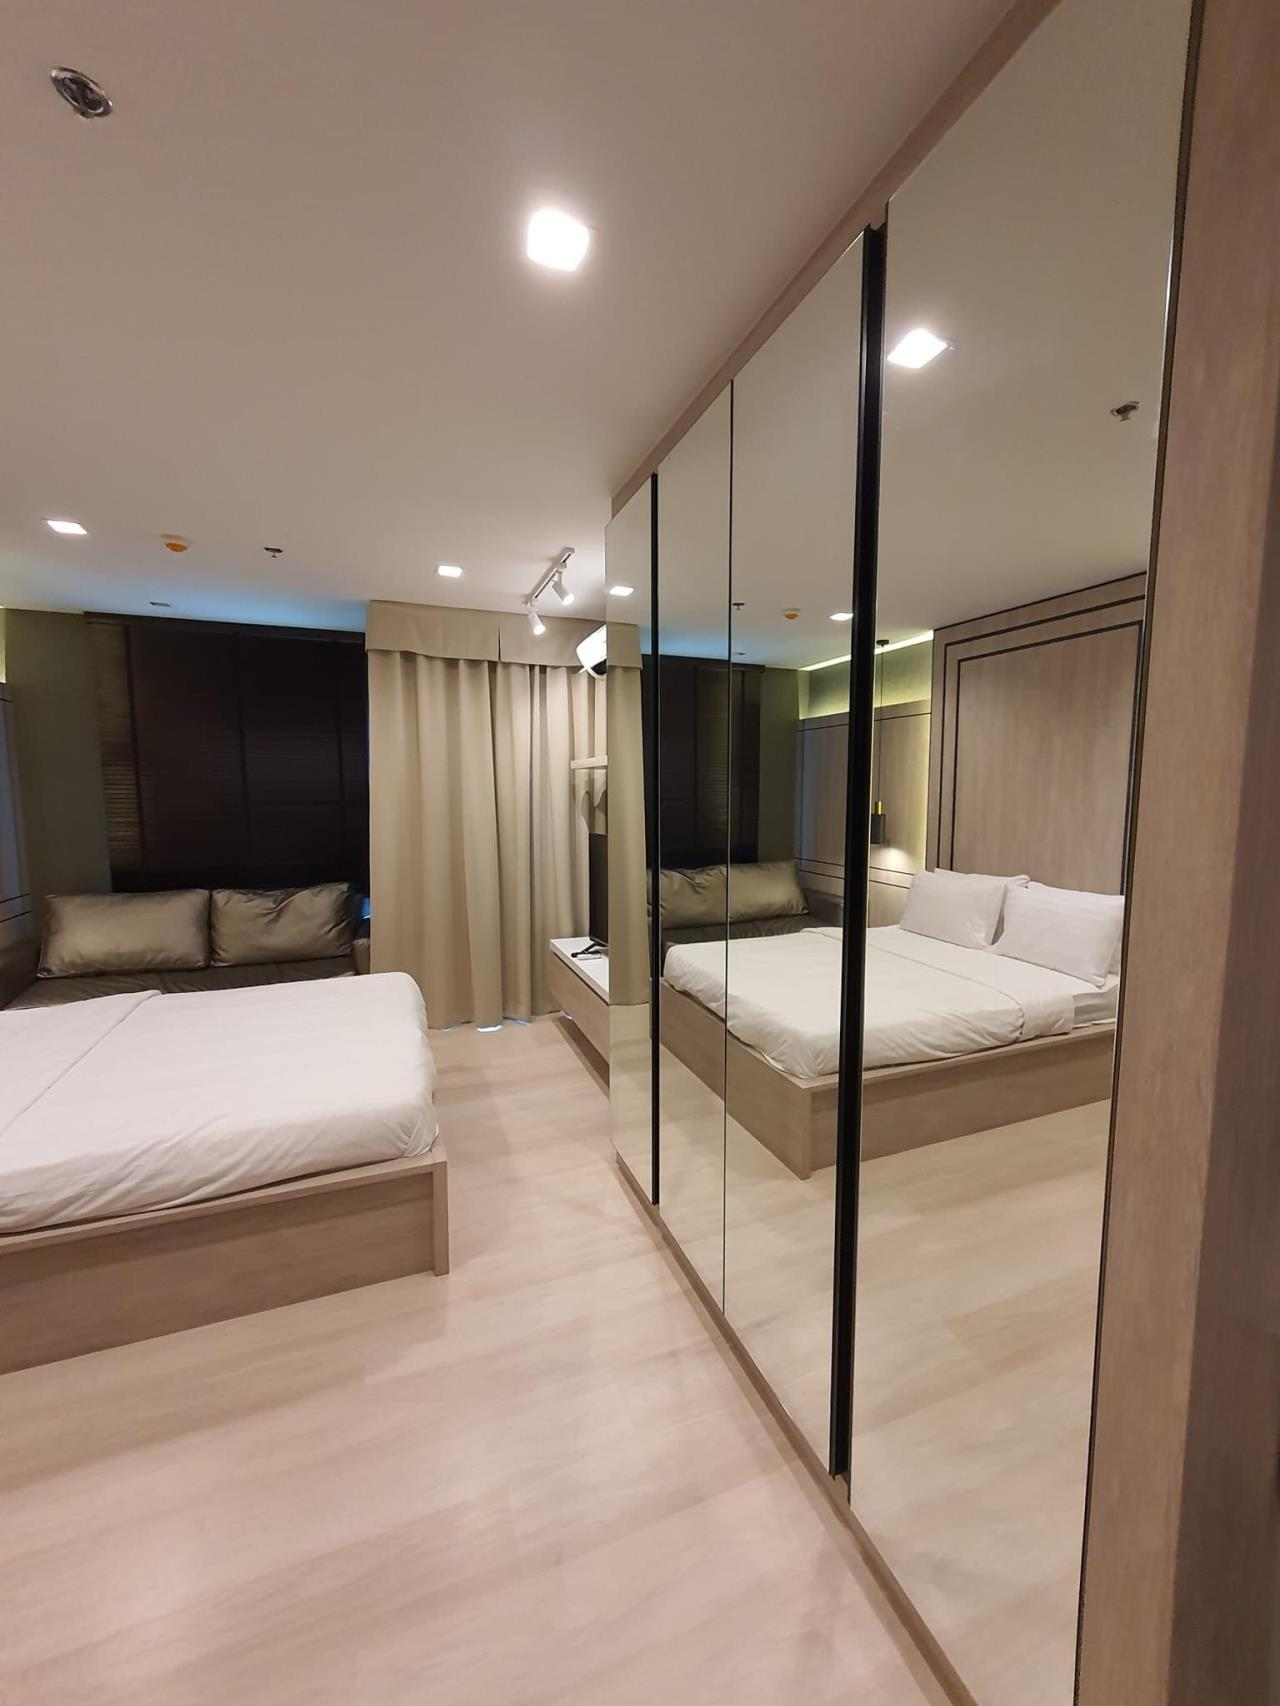 Blueocean property Agency's Condo For Rent – Life @ Wireless 7